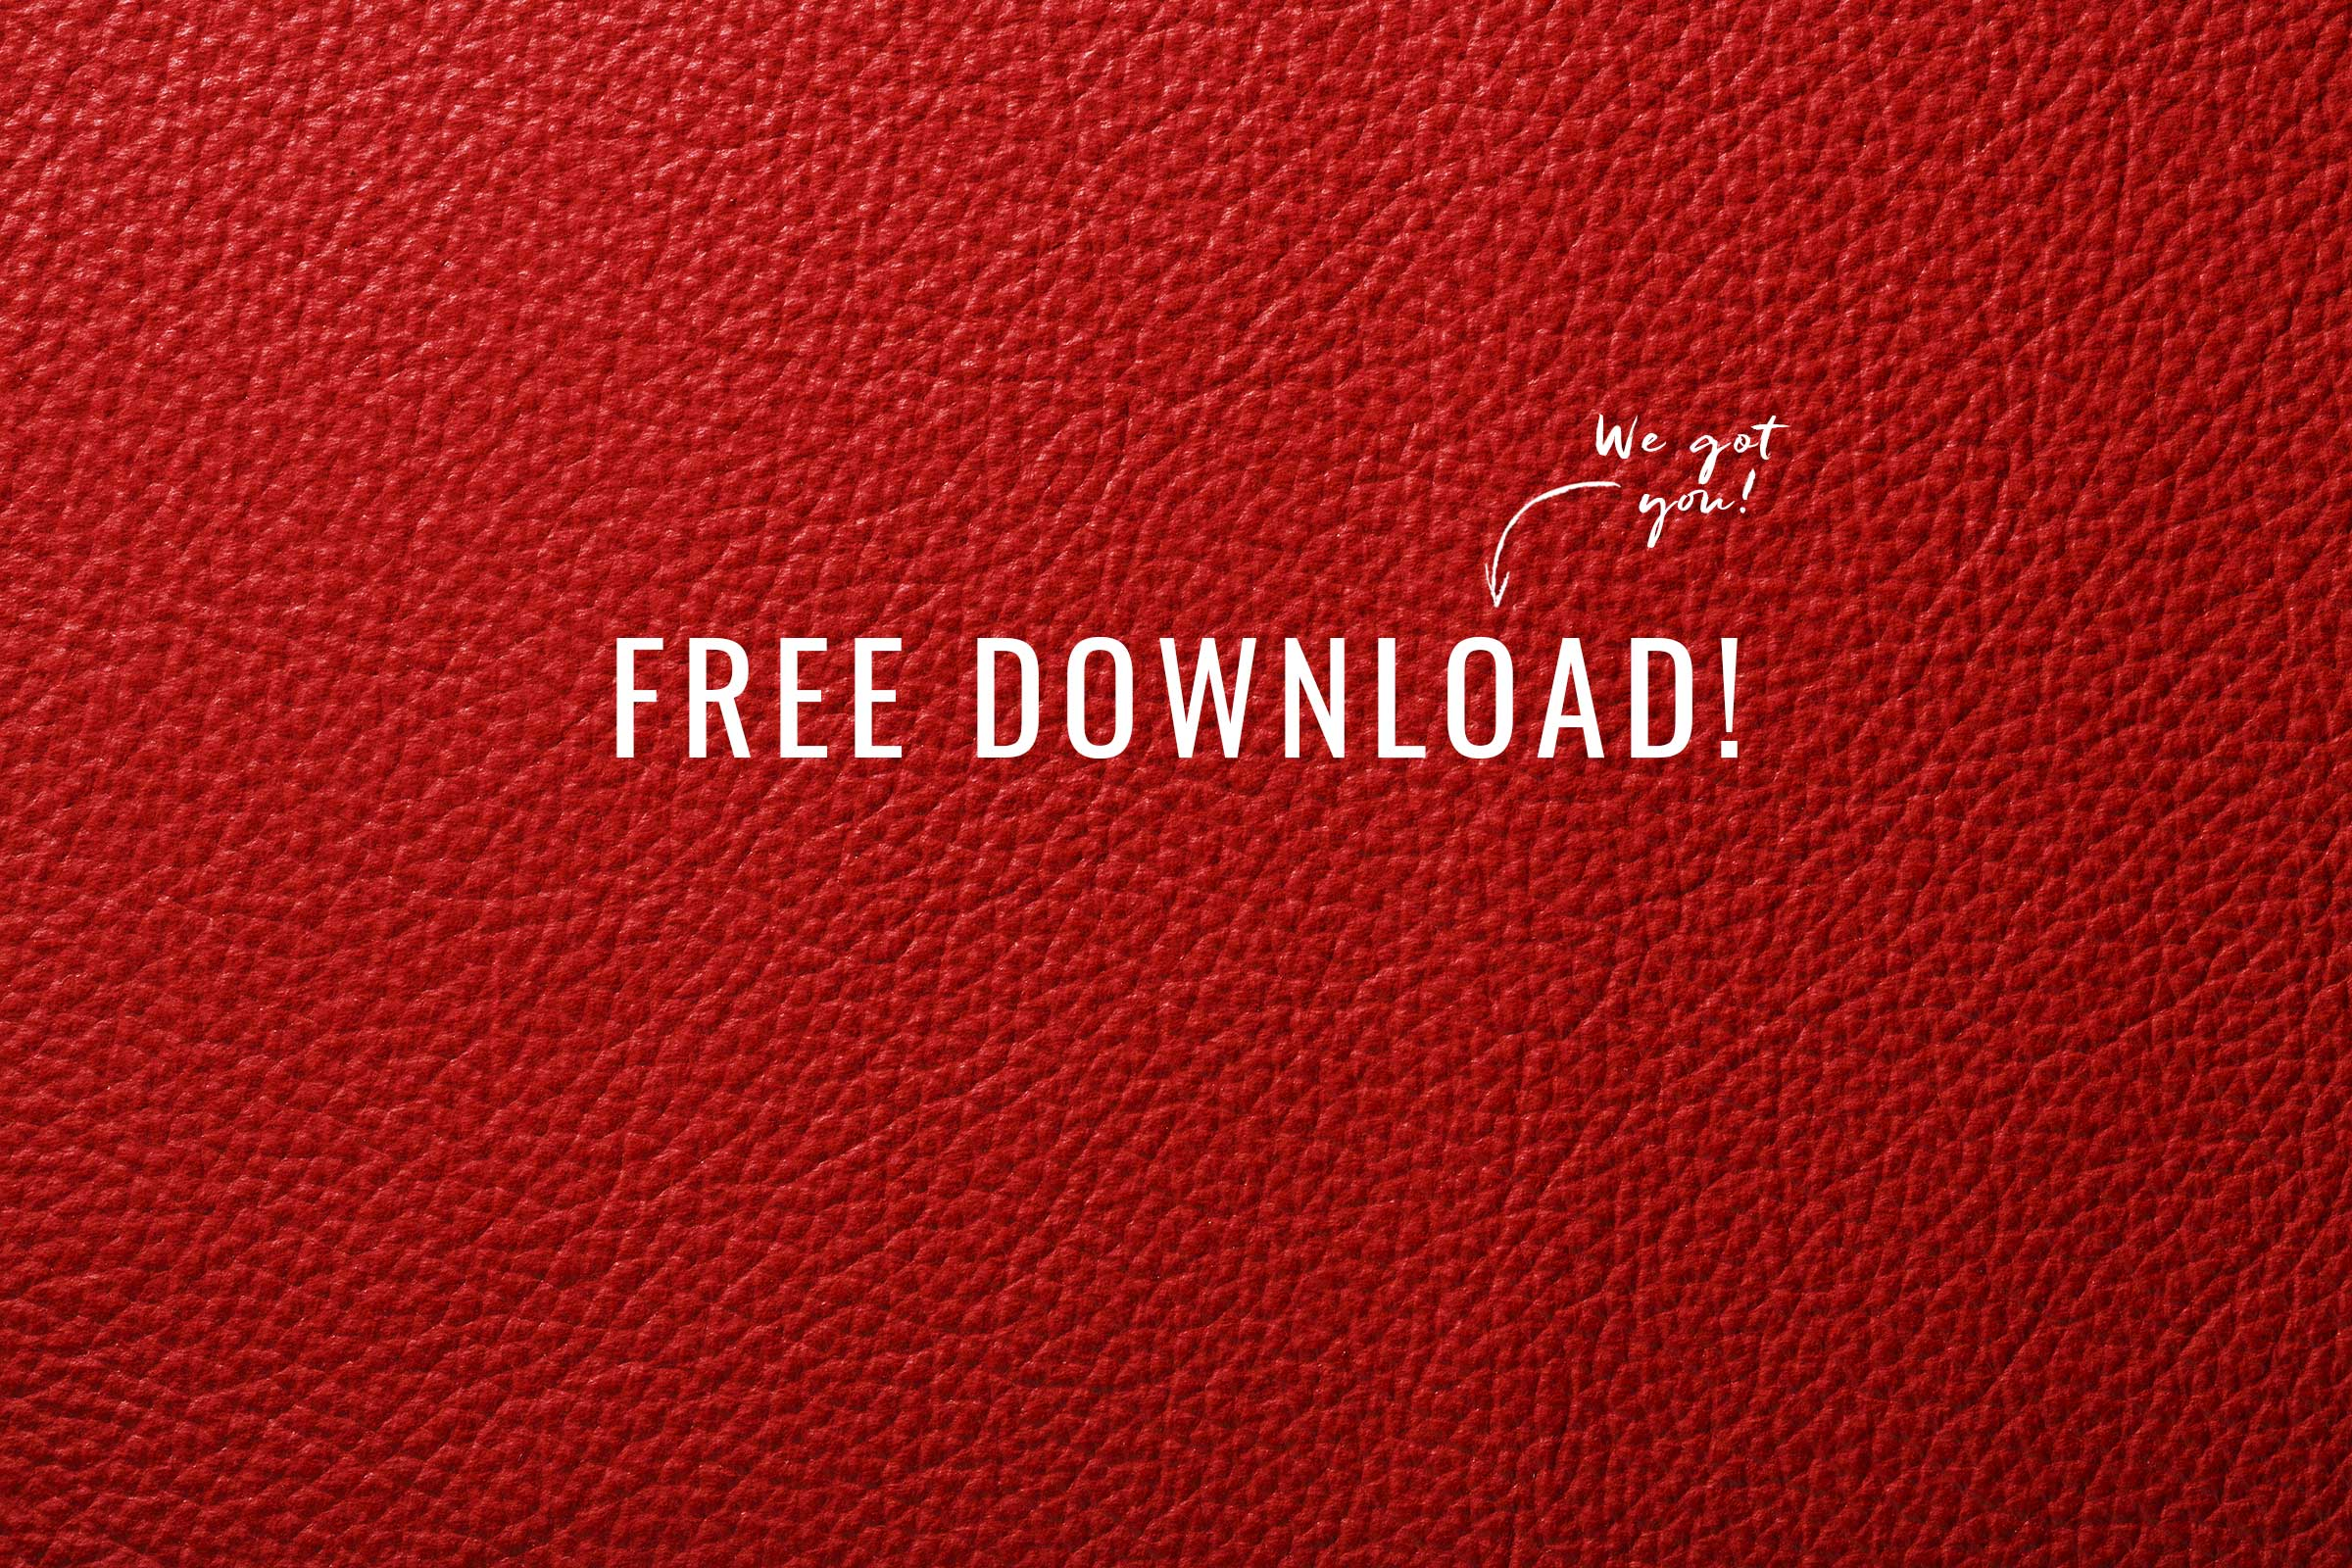 Les-Naly-Free-Download-Feature-Image.jpg